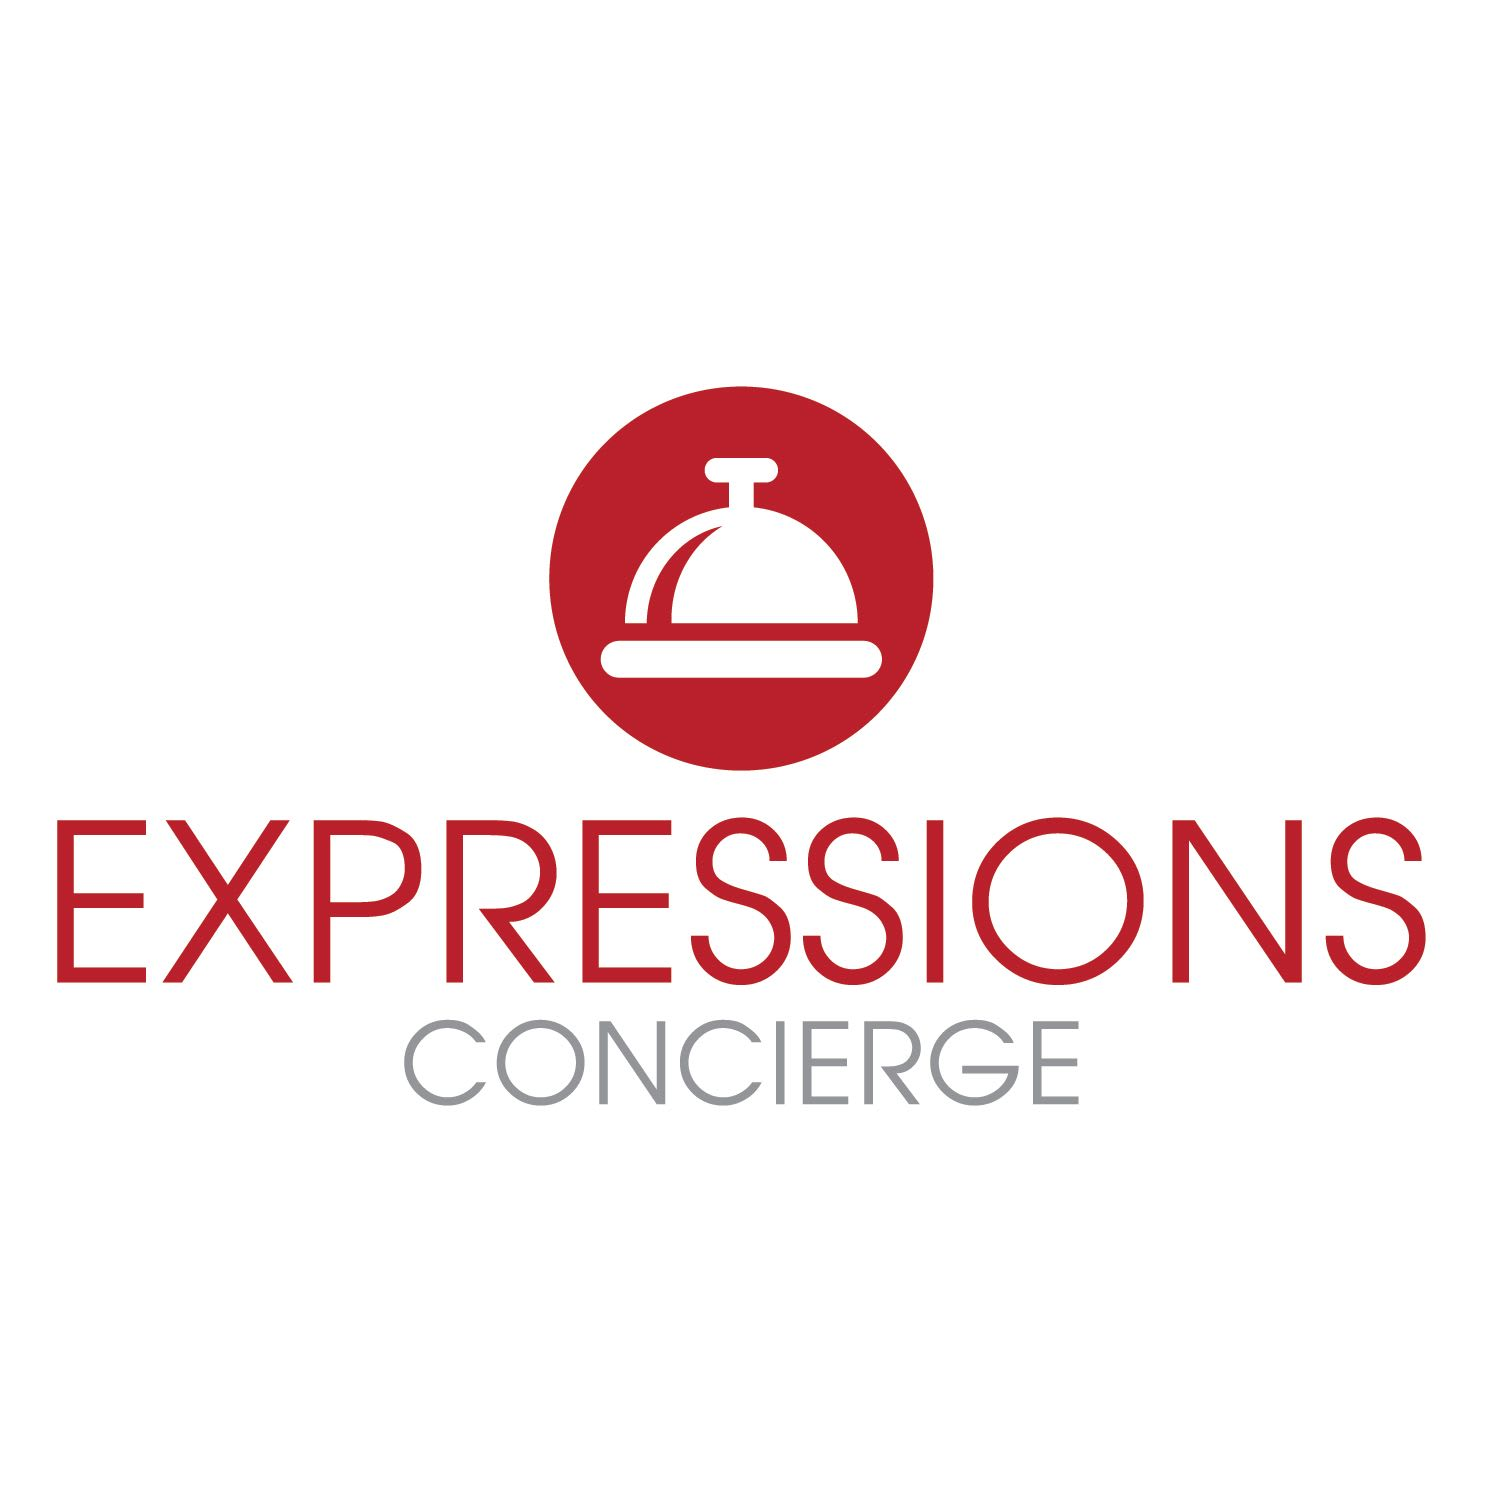 Expressions concierge plan at Discovery Commons